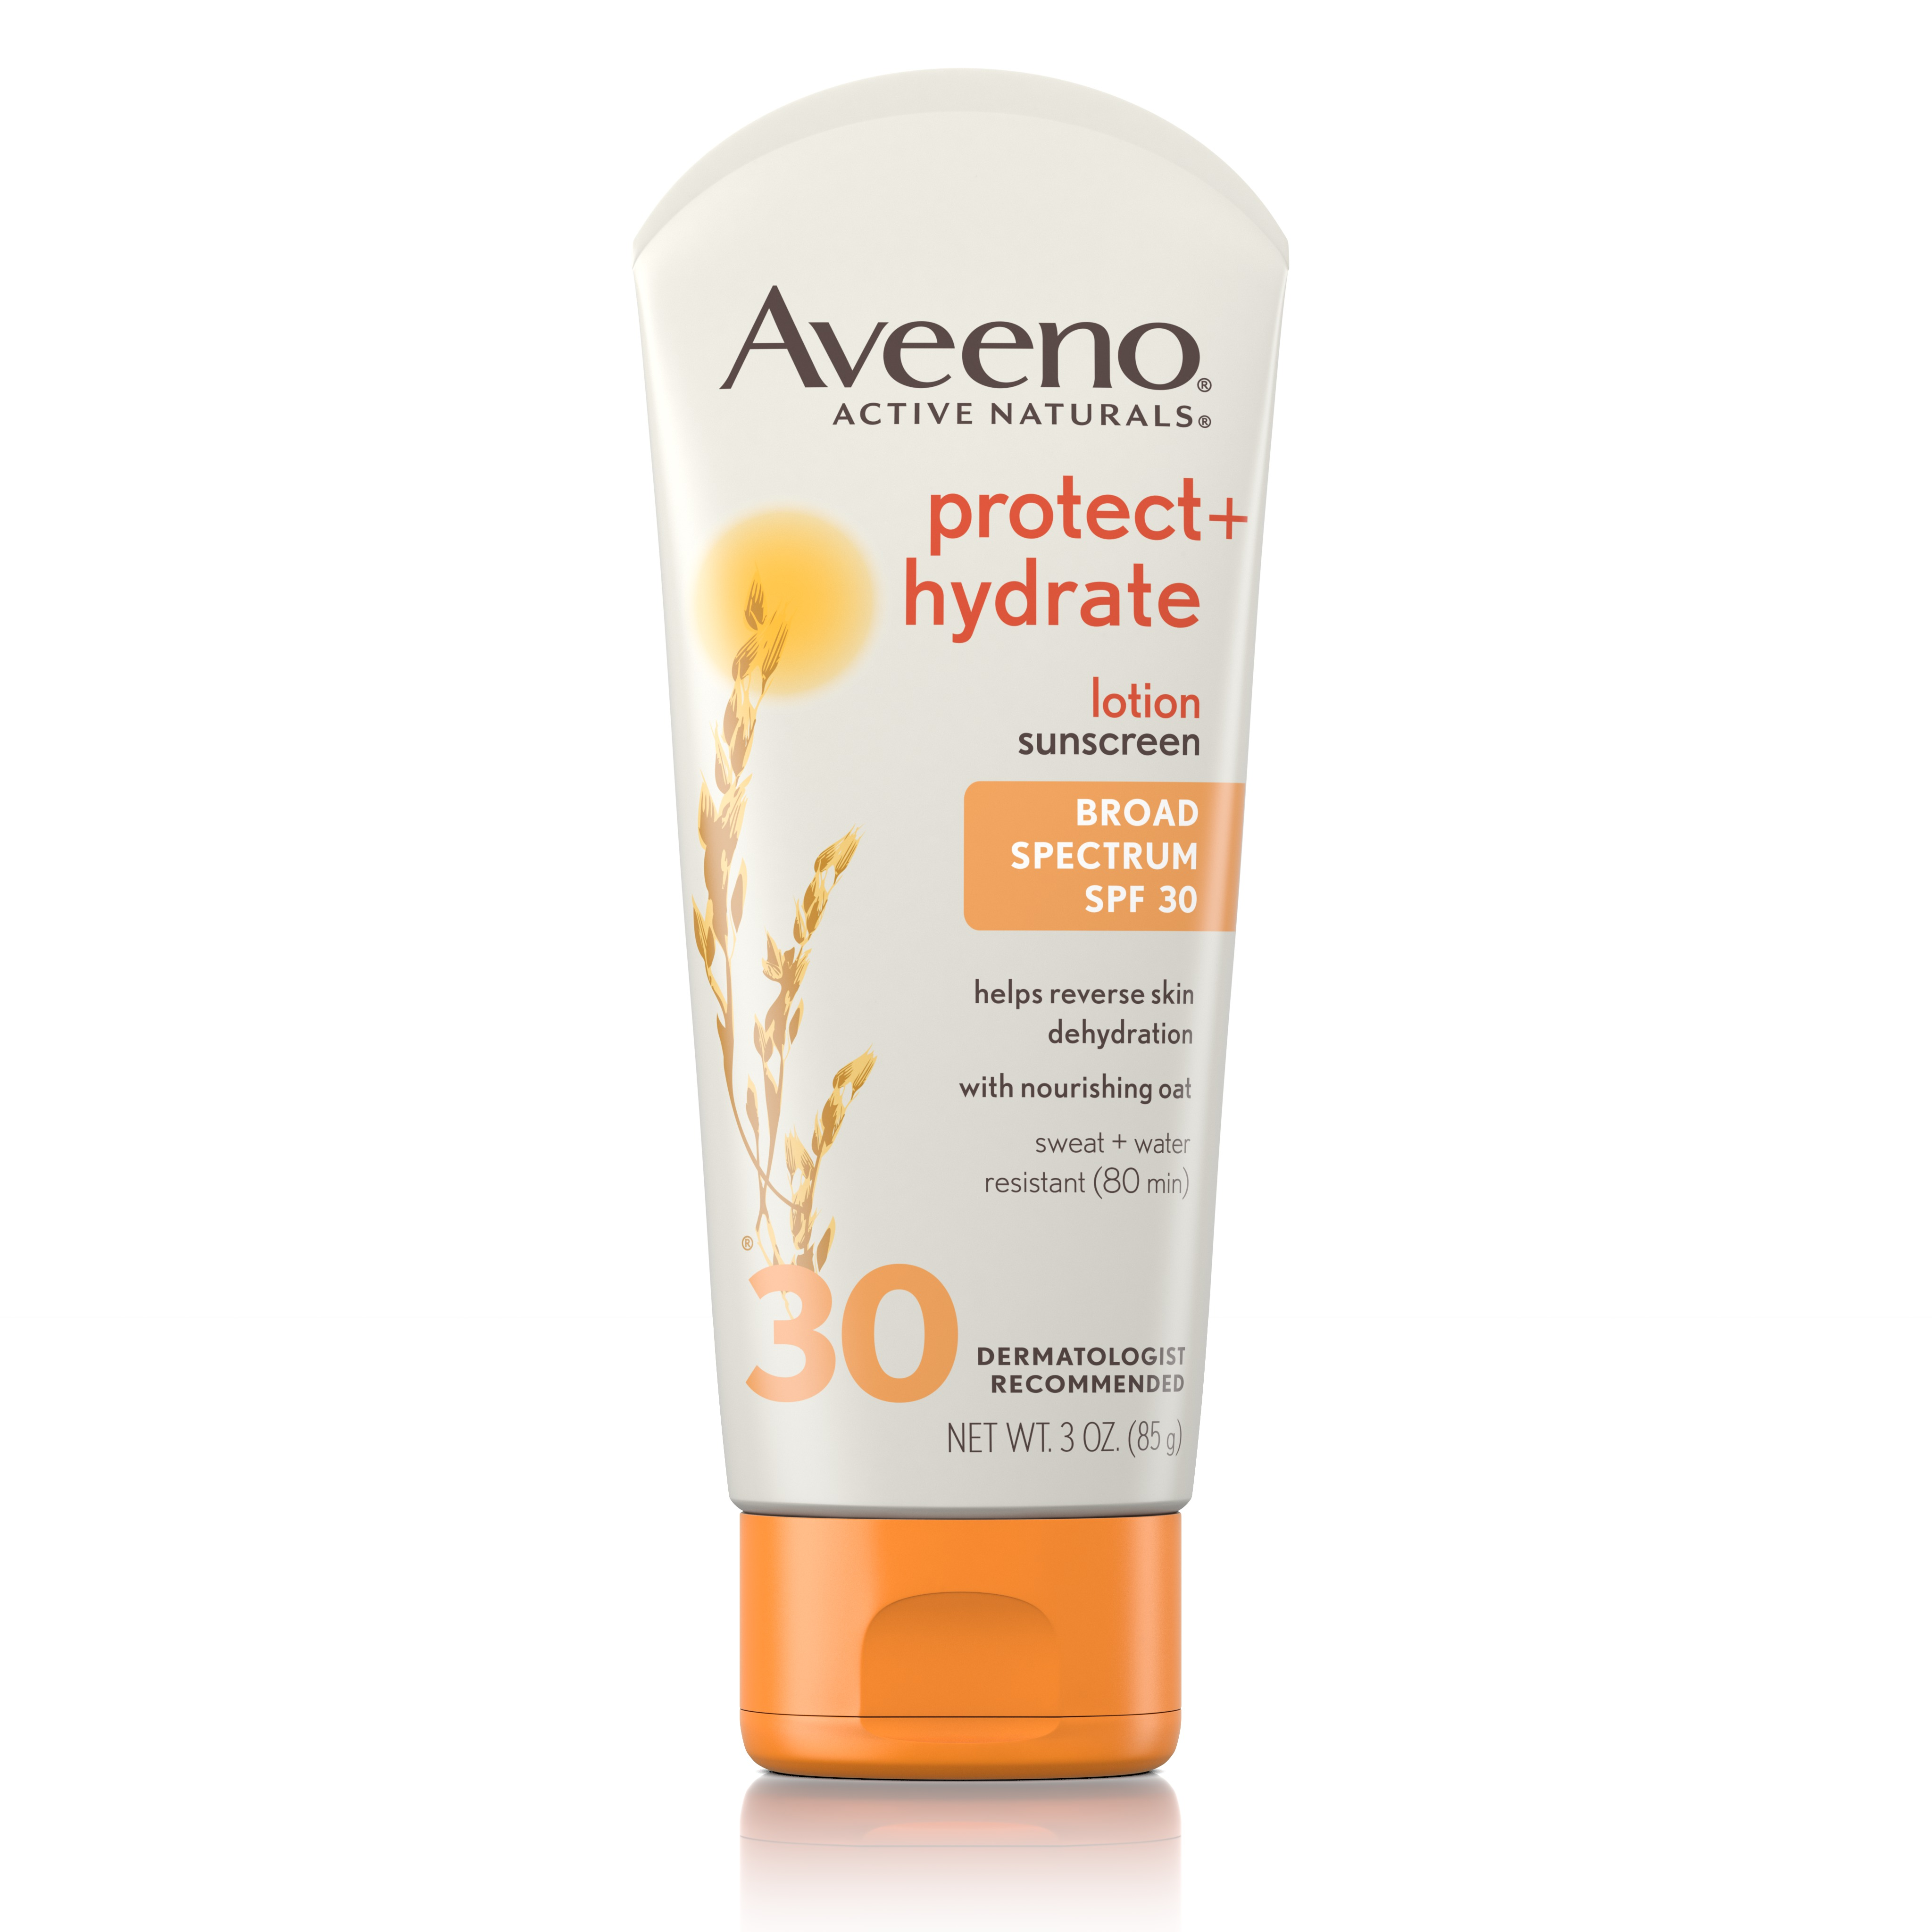 Aveeno Protect + Hydrate Moisturizing Sunscreen Lotion, SPF 30, 3 oz